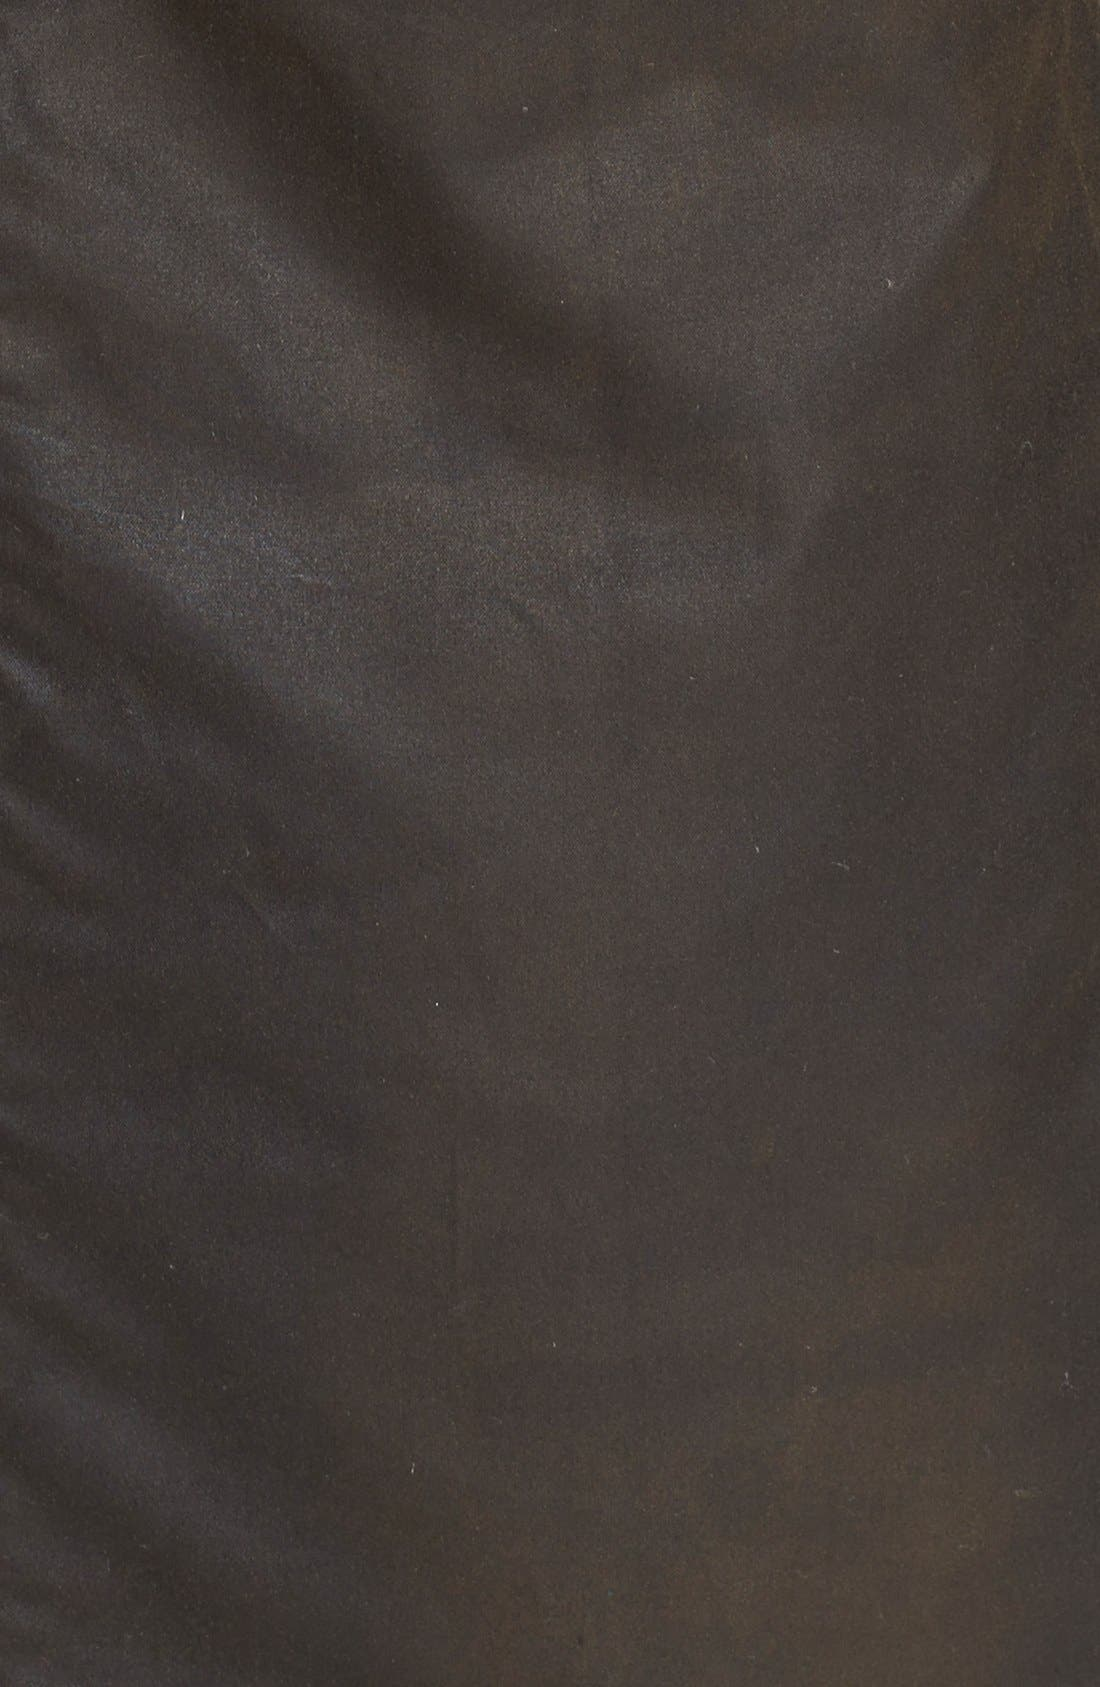 Alternate Image 3  - Barbour 'Squire' Waterproof Waxed Cotton Jacket